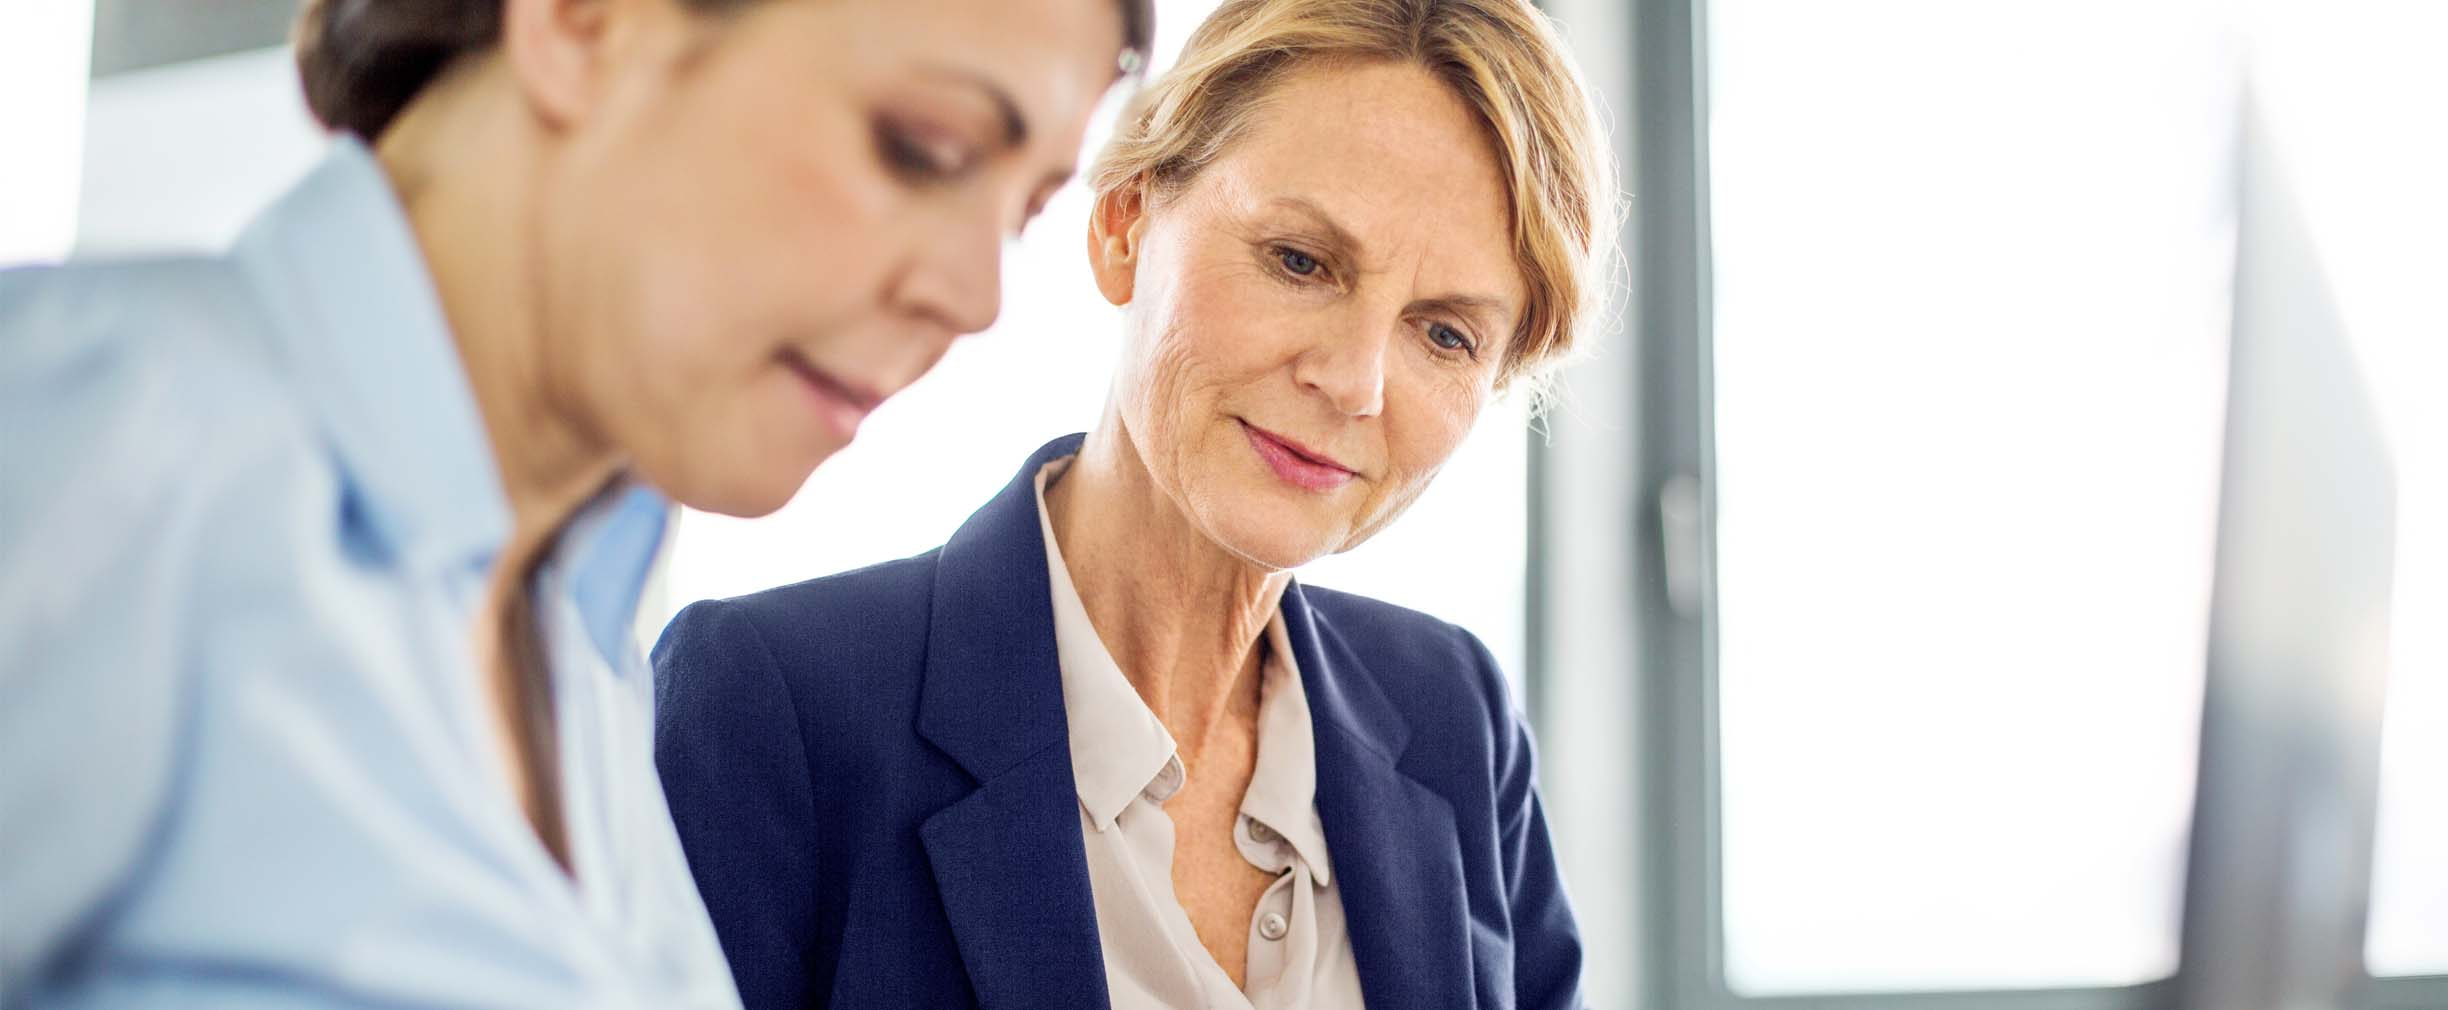 employer reviewing retirement plans